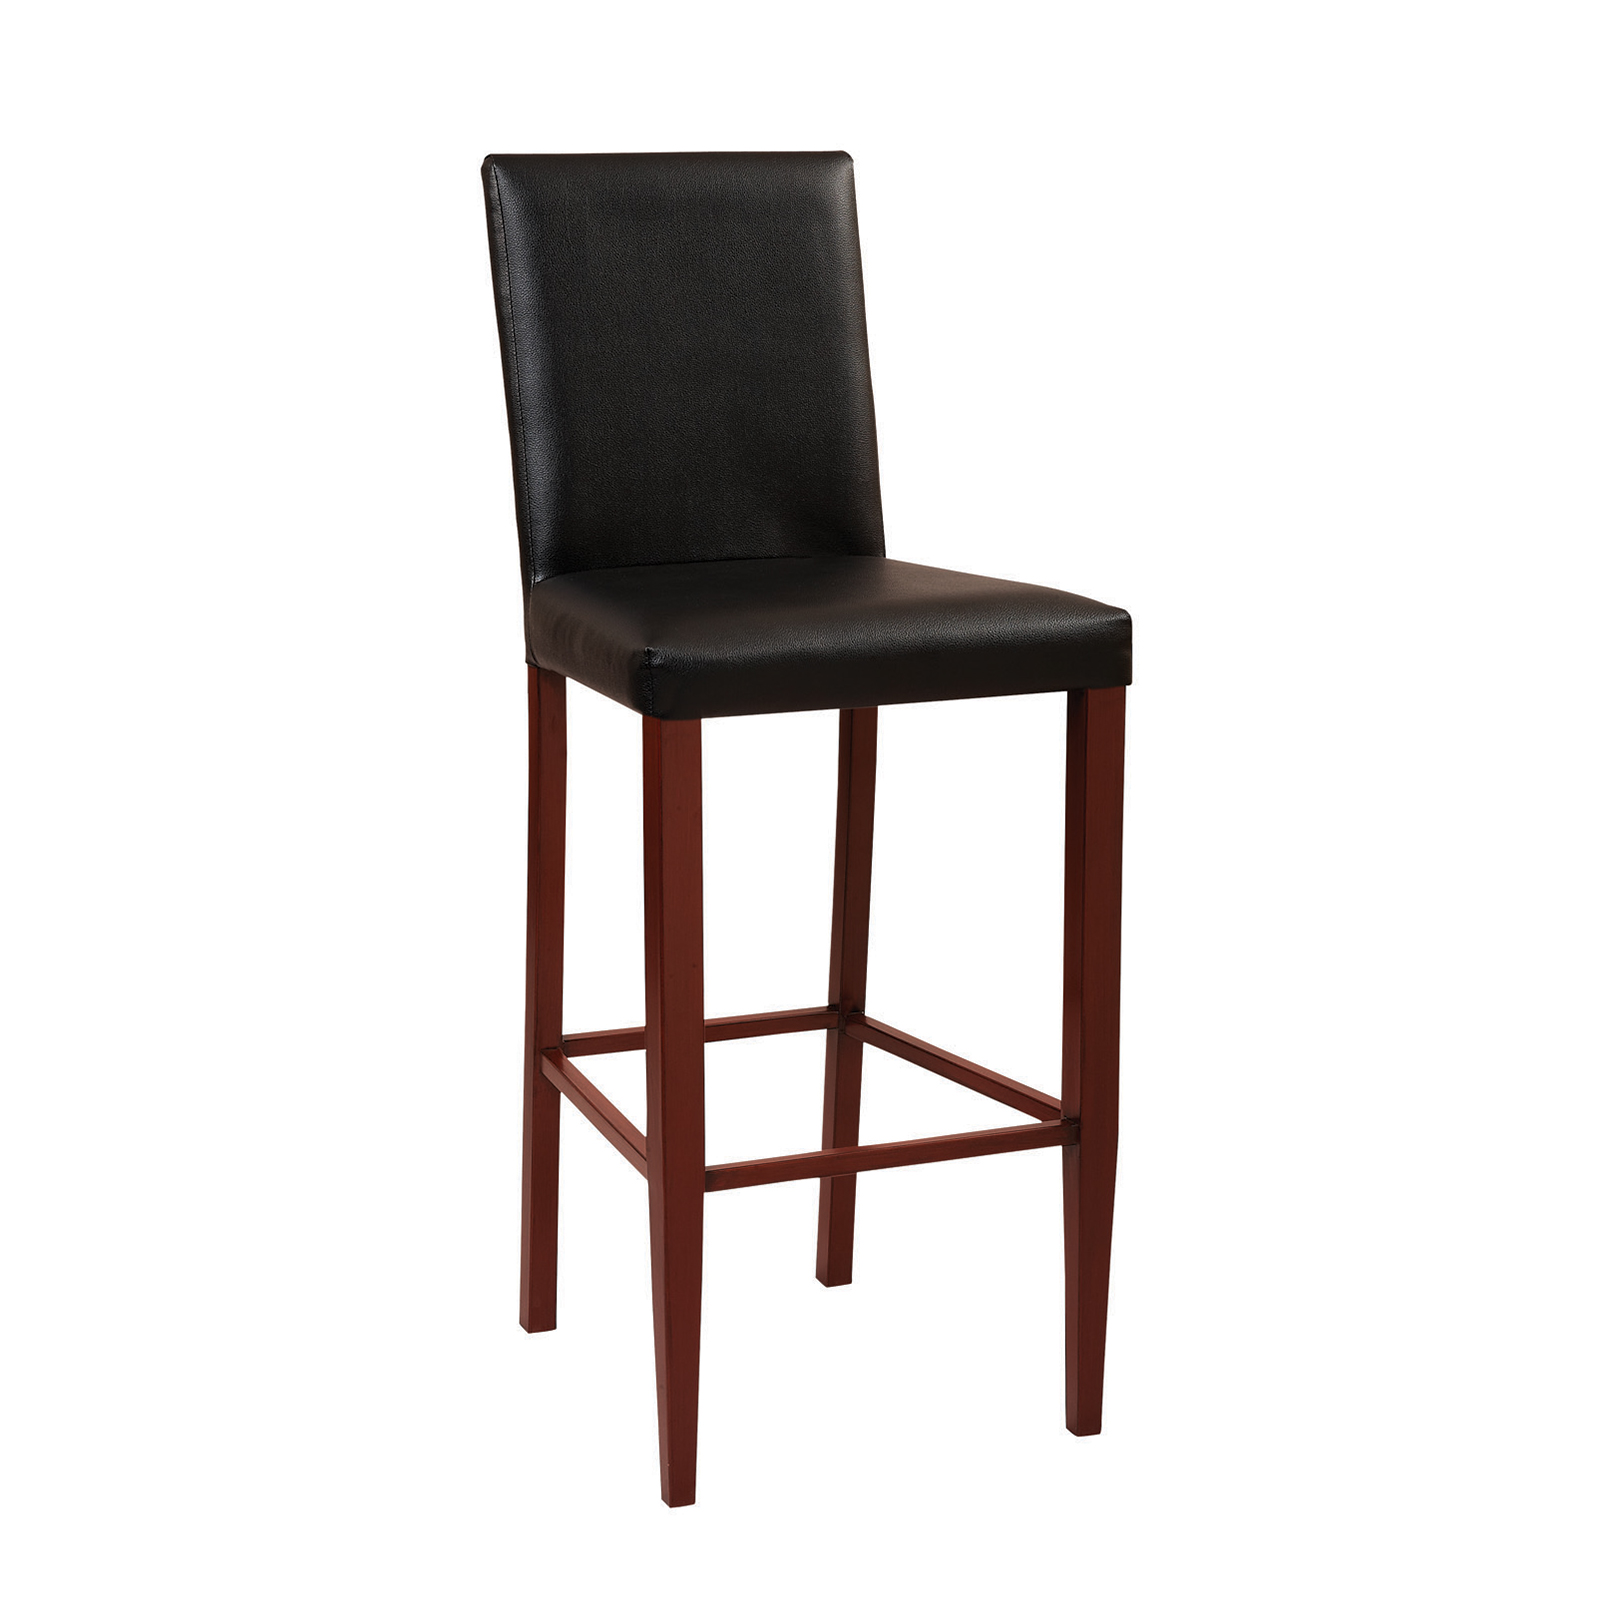 G & A Commercial Seating 606-B bar stool, indoor